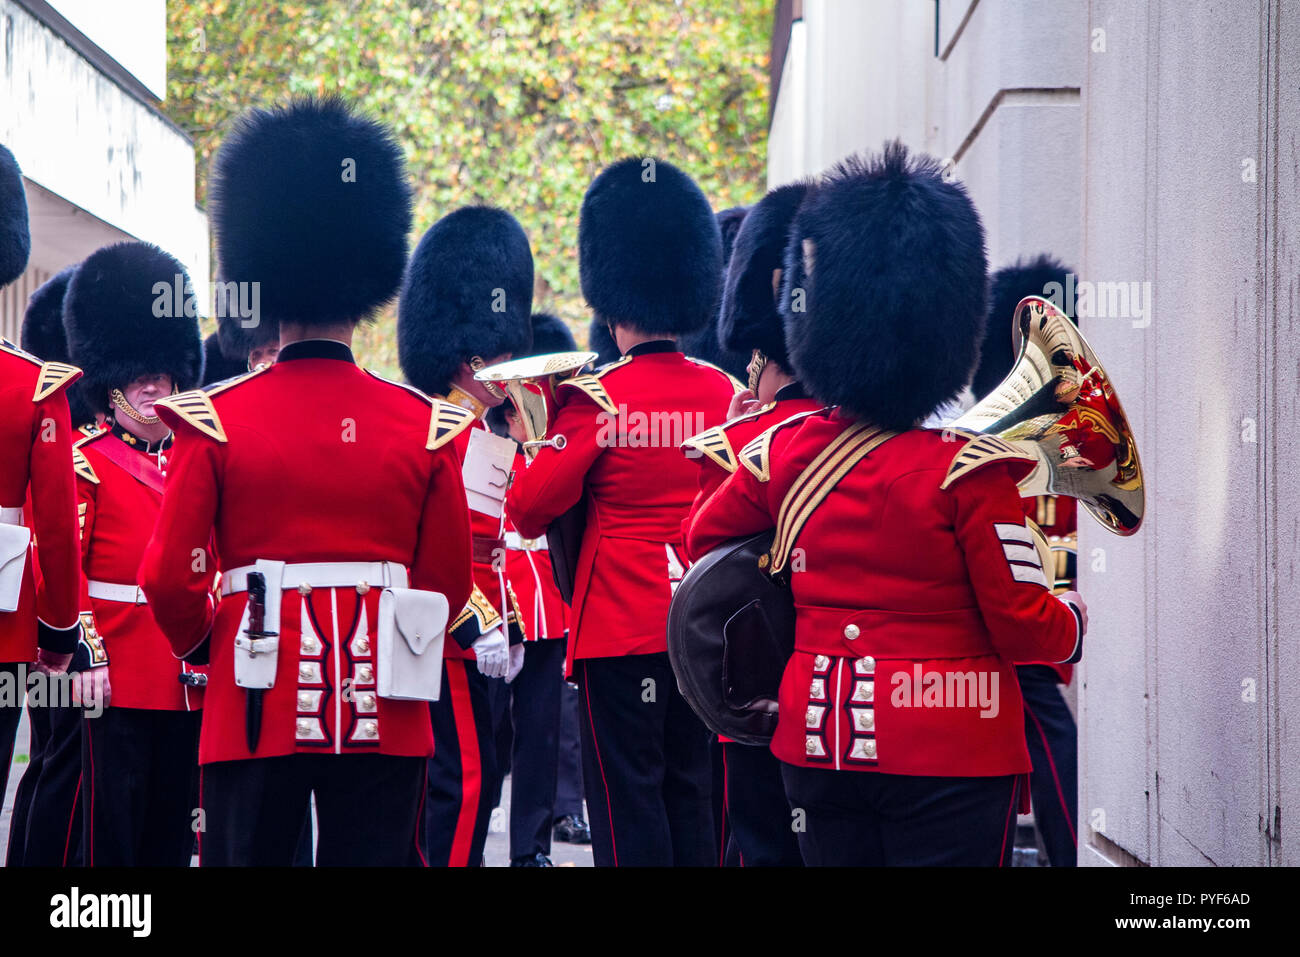 A military band rehearse for the changing of the guard as onlookers watch and take photographs with their smartphones - Stock Image